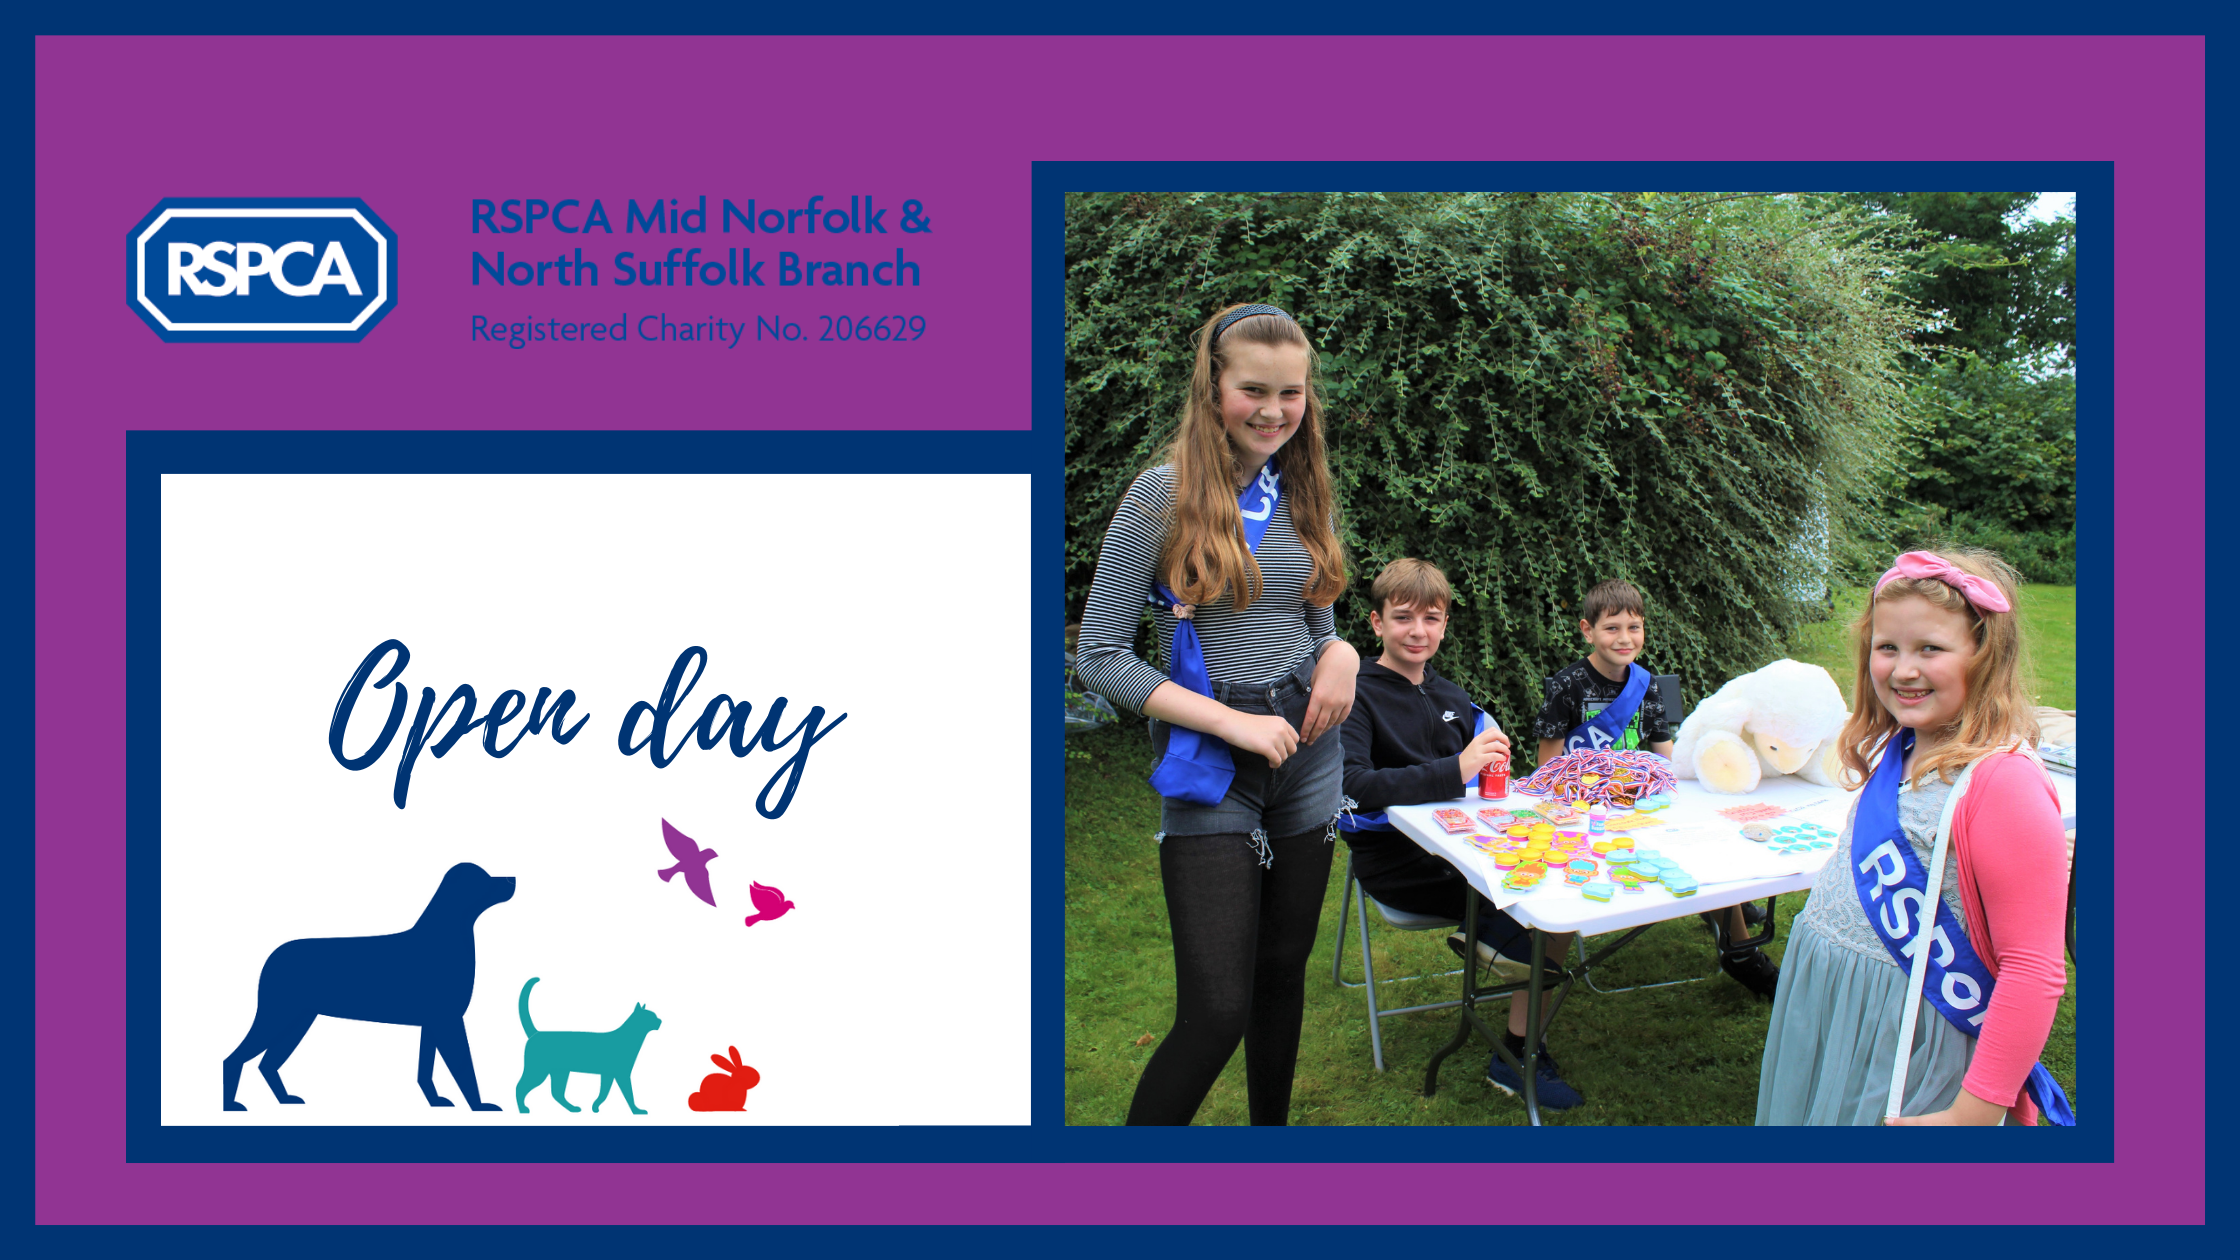 Open day- What a lovely day!